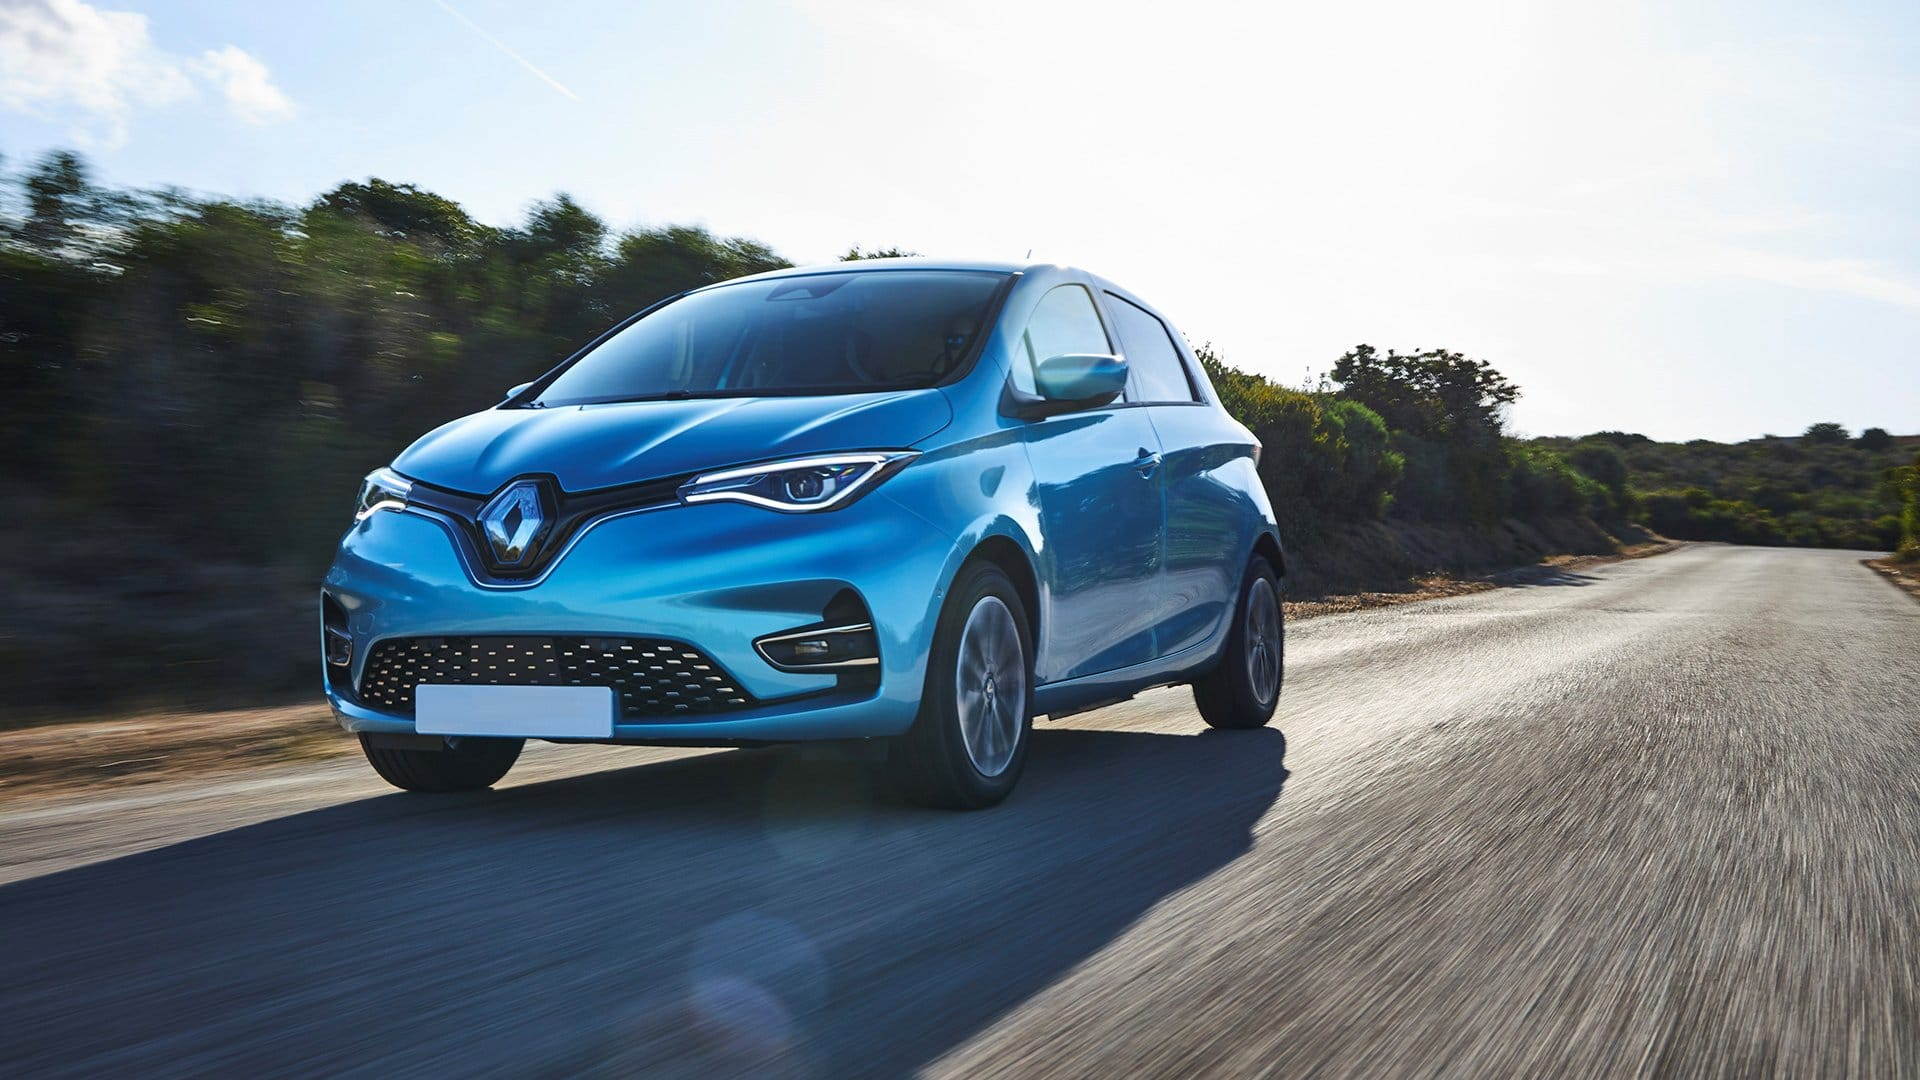 Reviewing the Renault Zoe